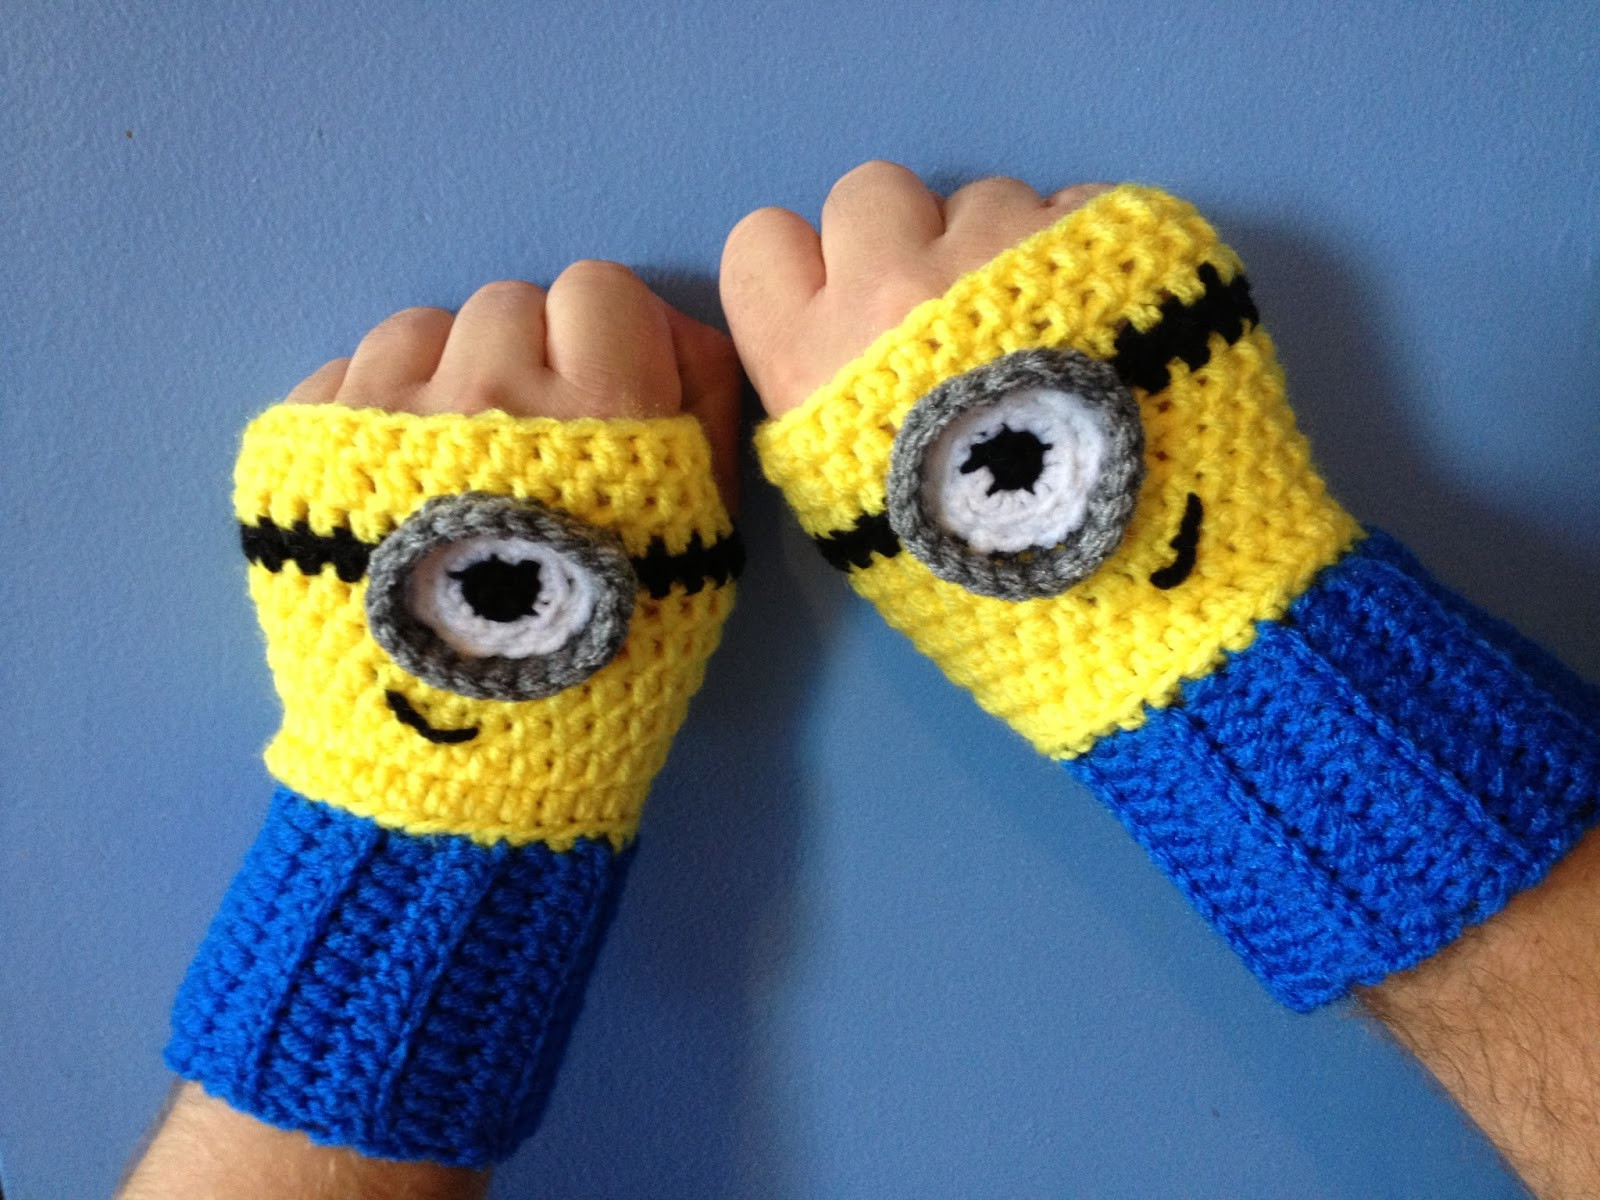 Awesome My Crocheted World Despicable Me Minion Crochet Doll Free Minion Crochet Pattern Of Marvelous 44 Images Free Minion Crochet Pattern